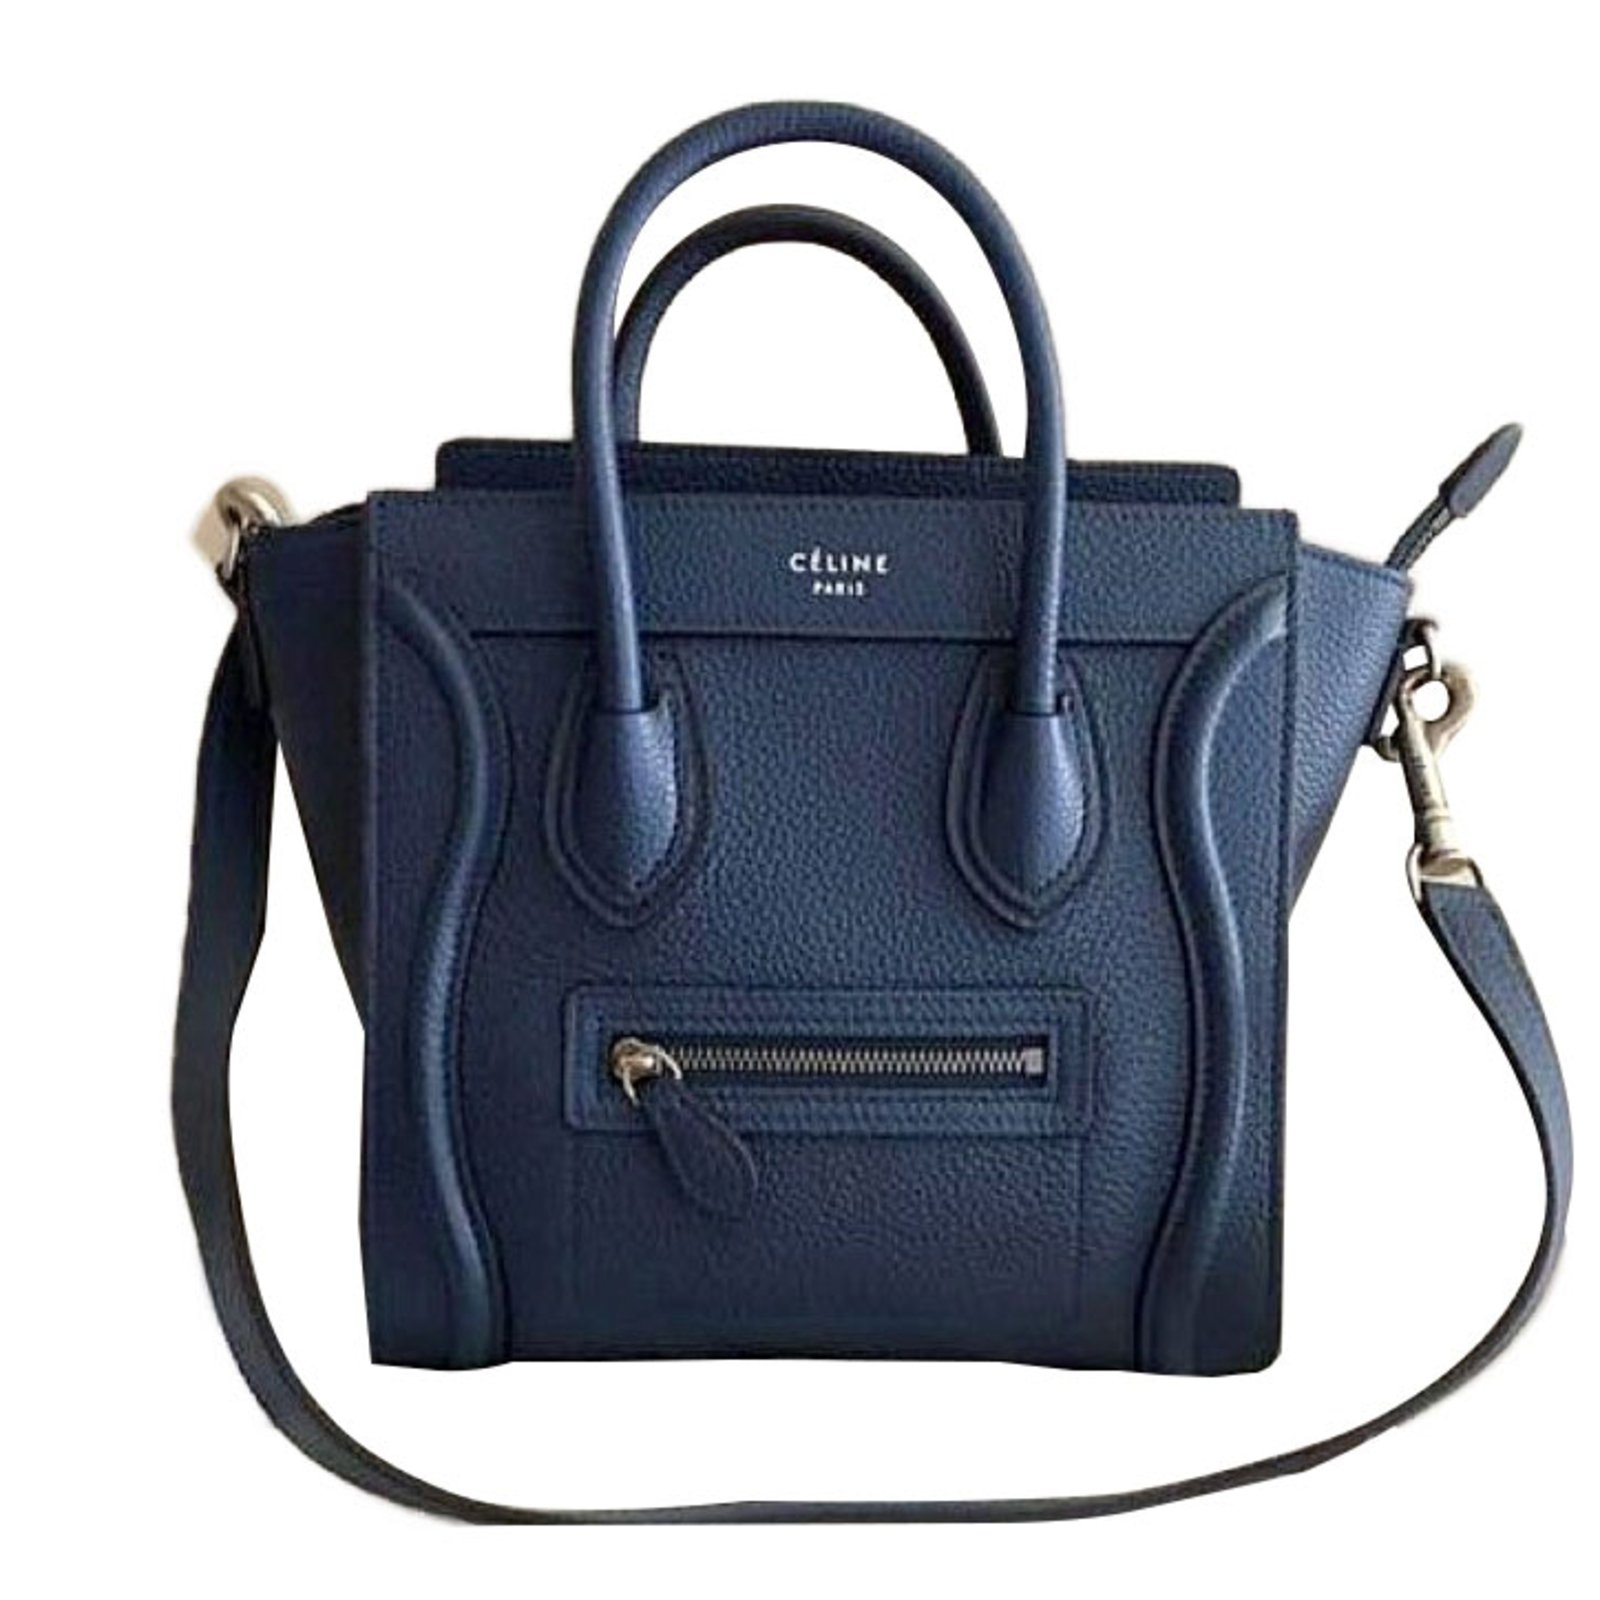 852aab4a8ac2 Céline Handbag Handbags Leather Navy blue ref.44933 - Joli Closet